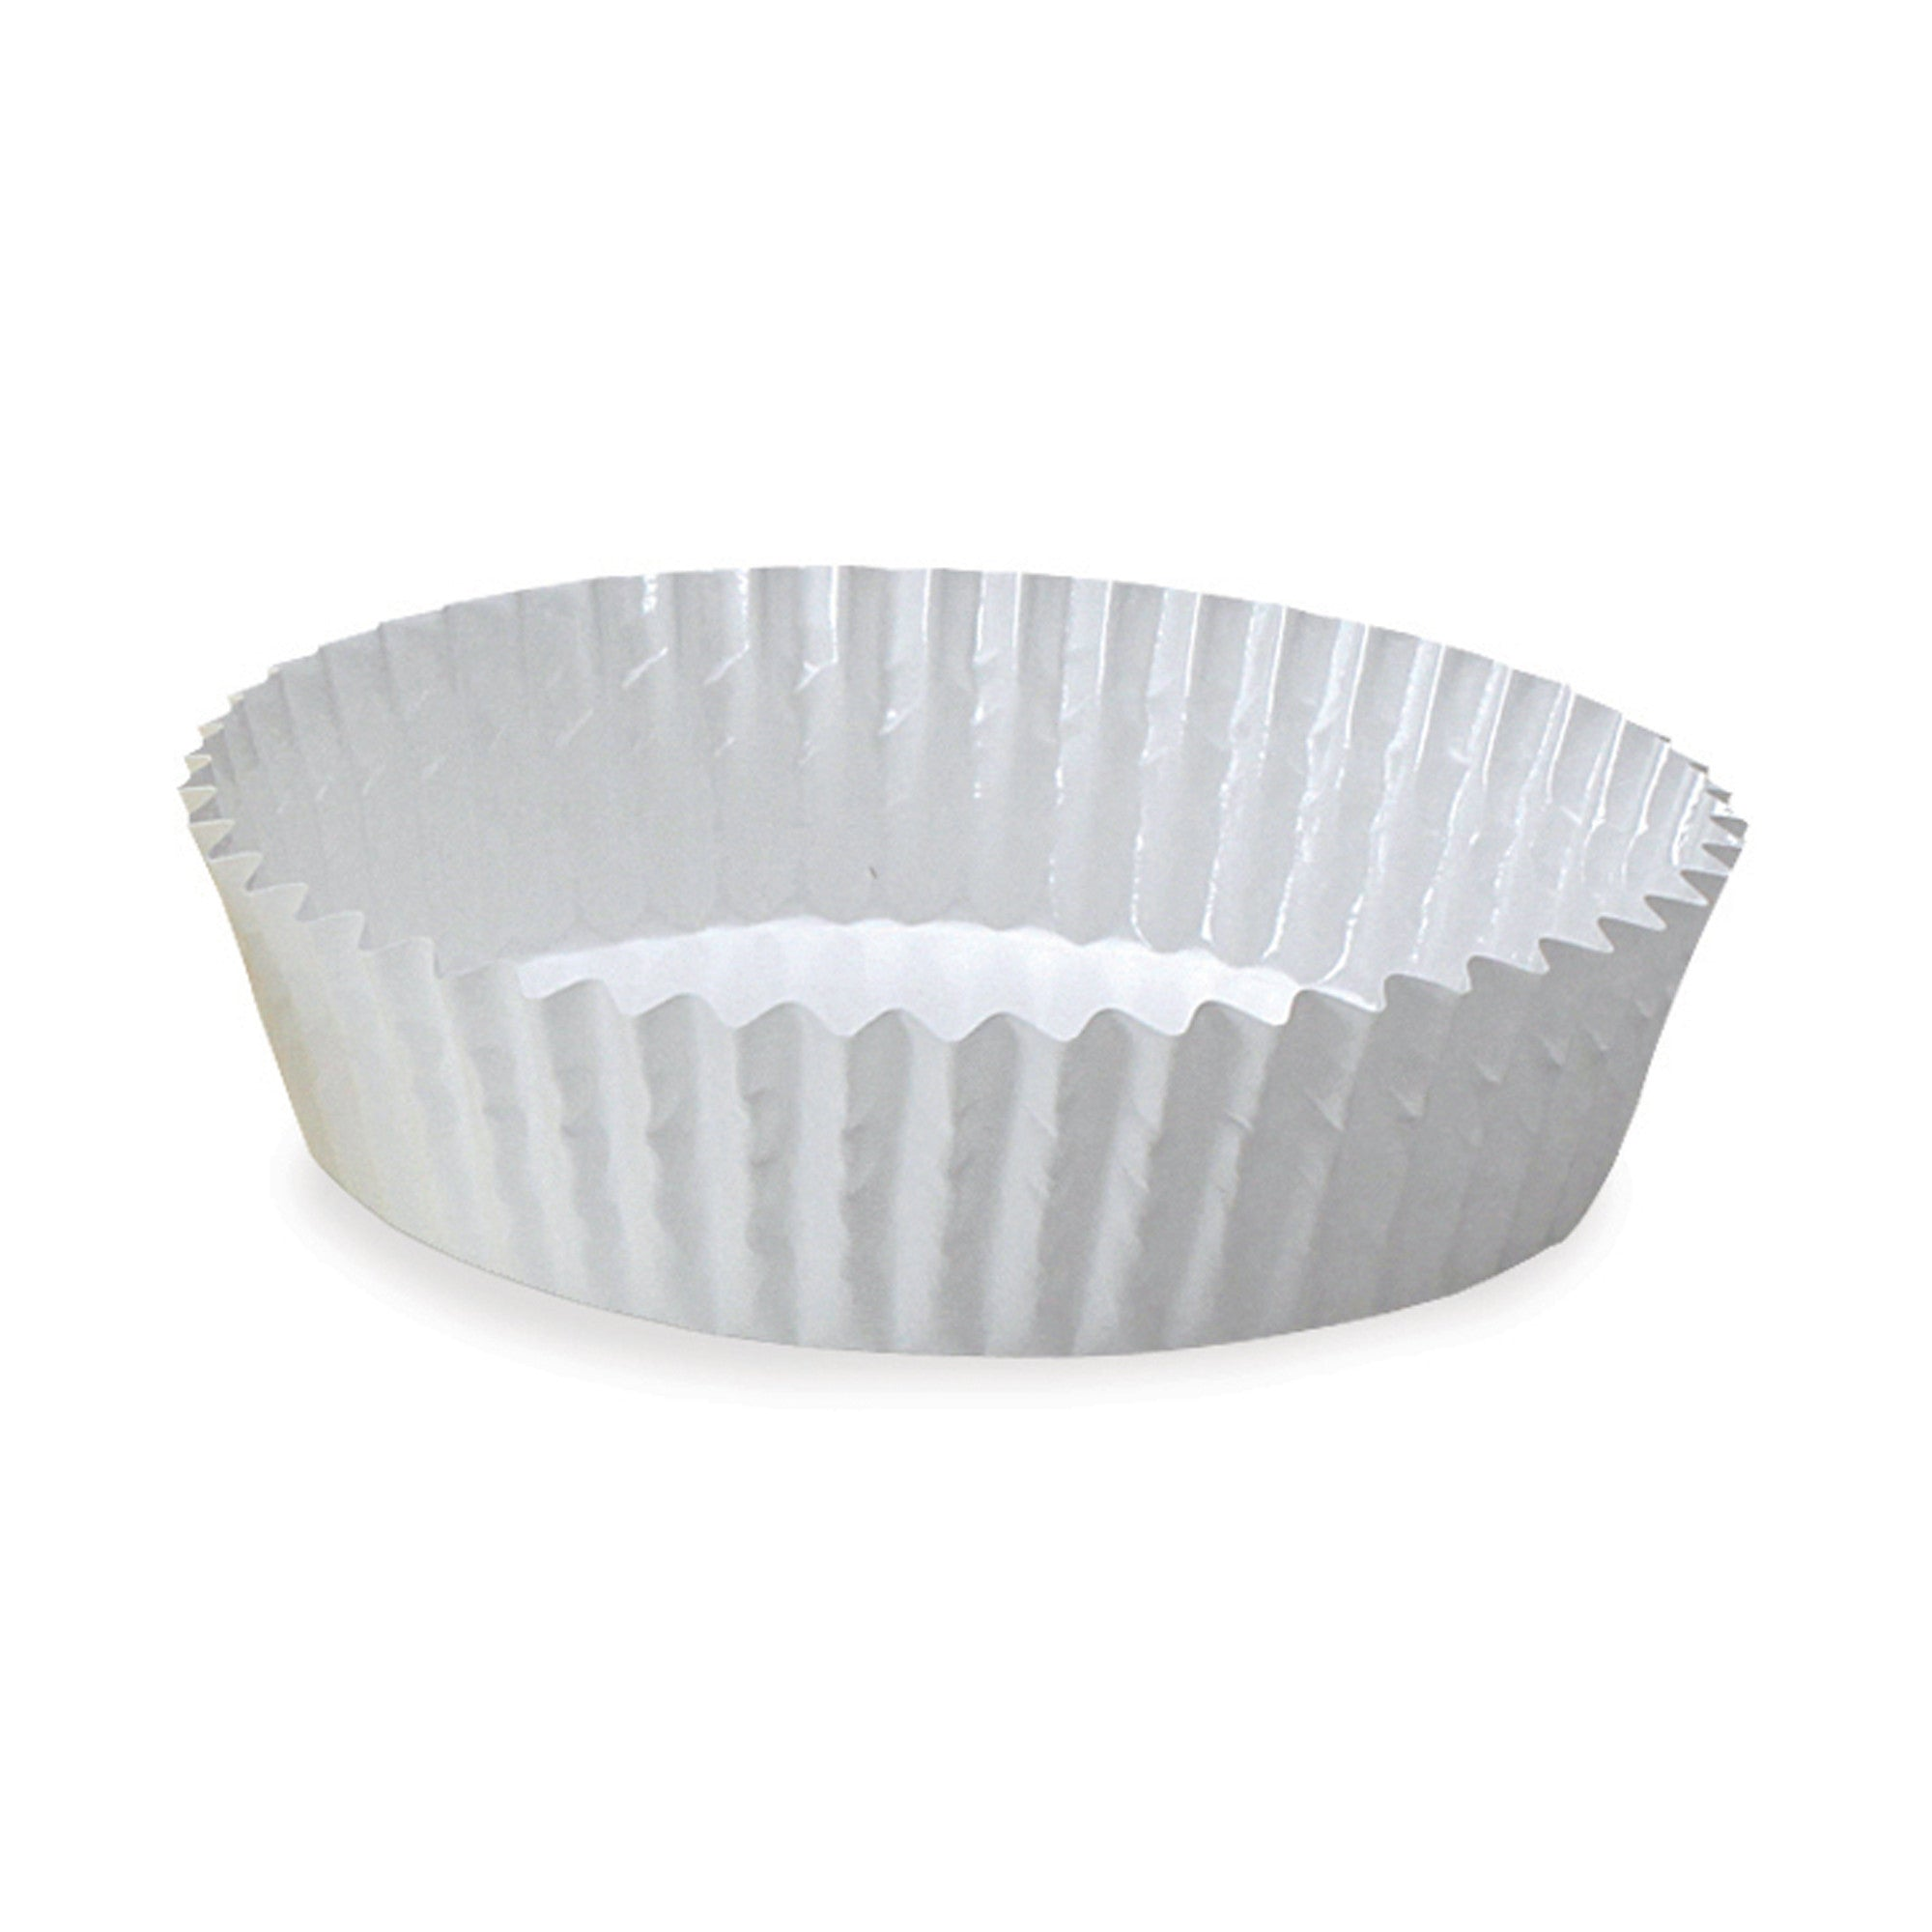 Ruffled Baking Cups, PTC12030W - Welcome Home Brands